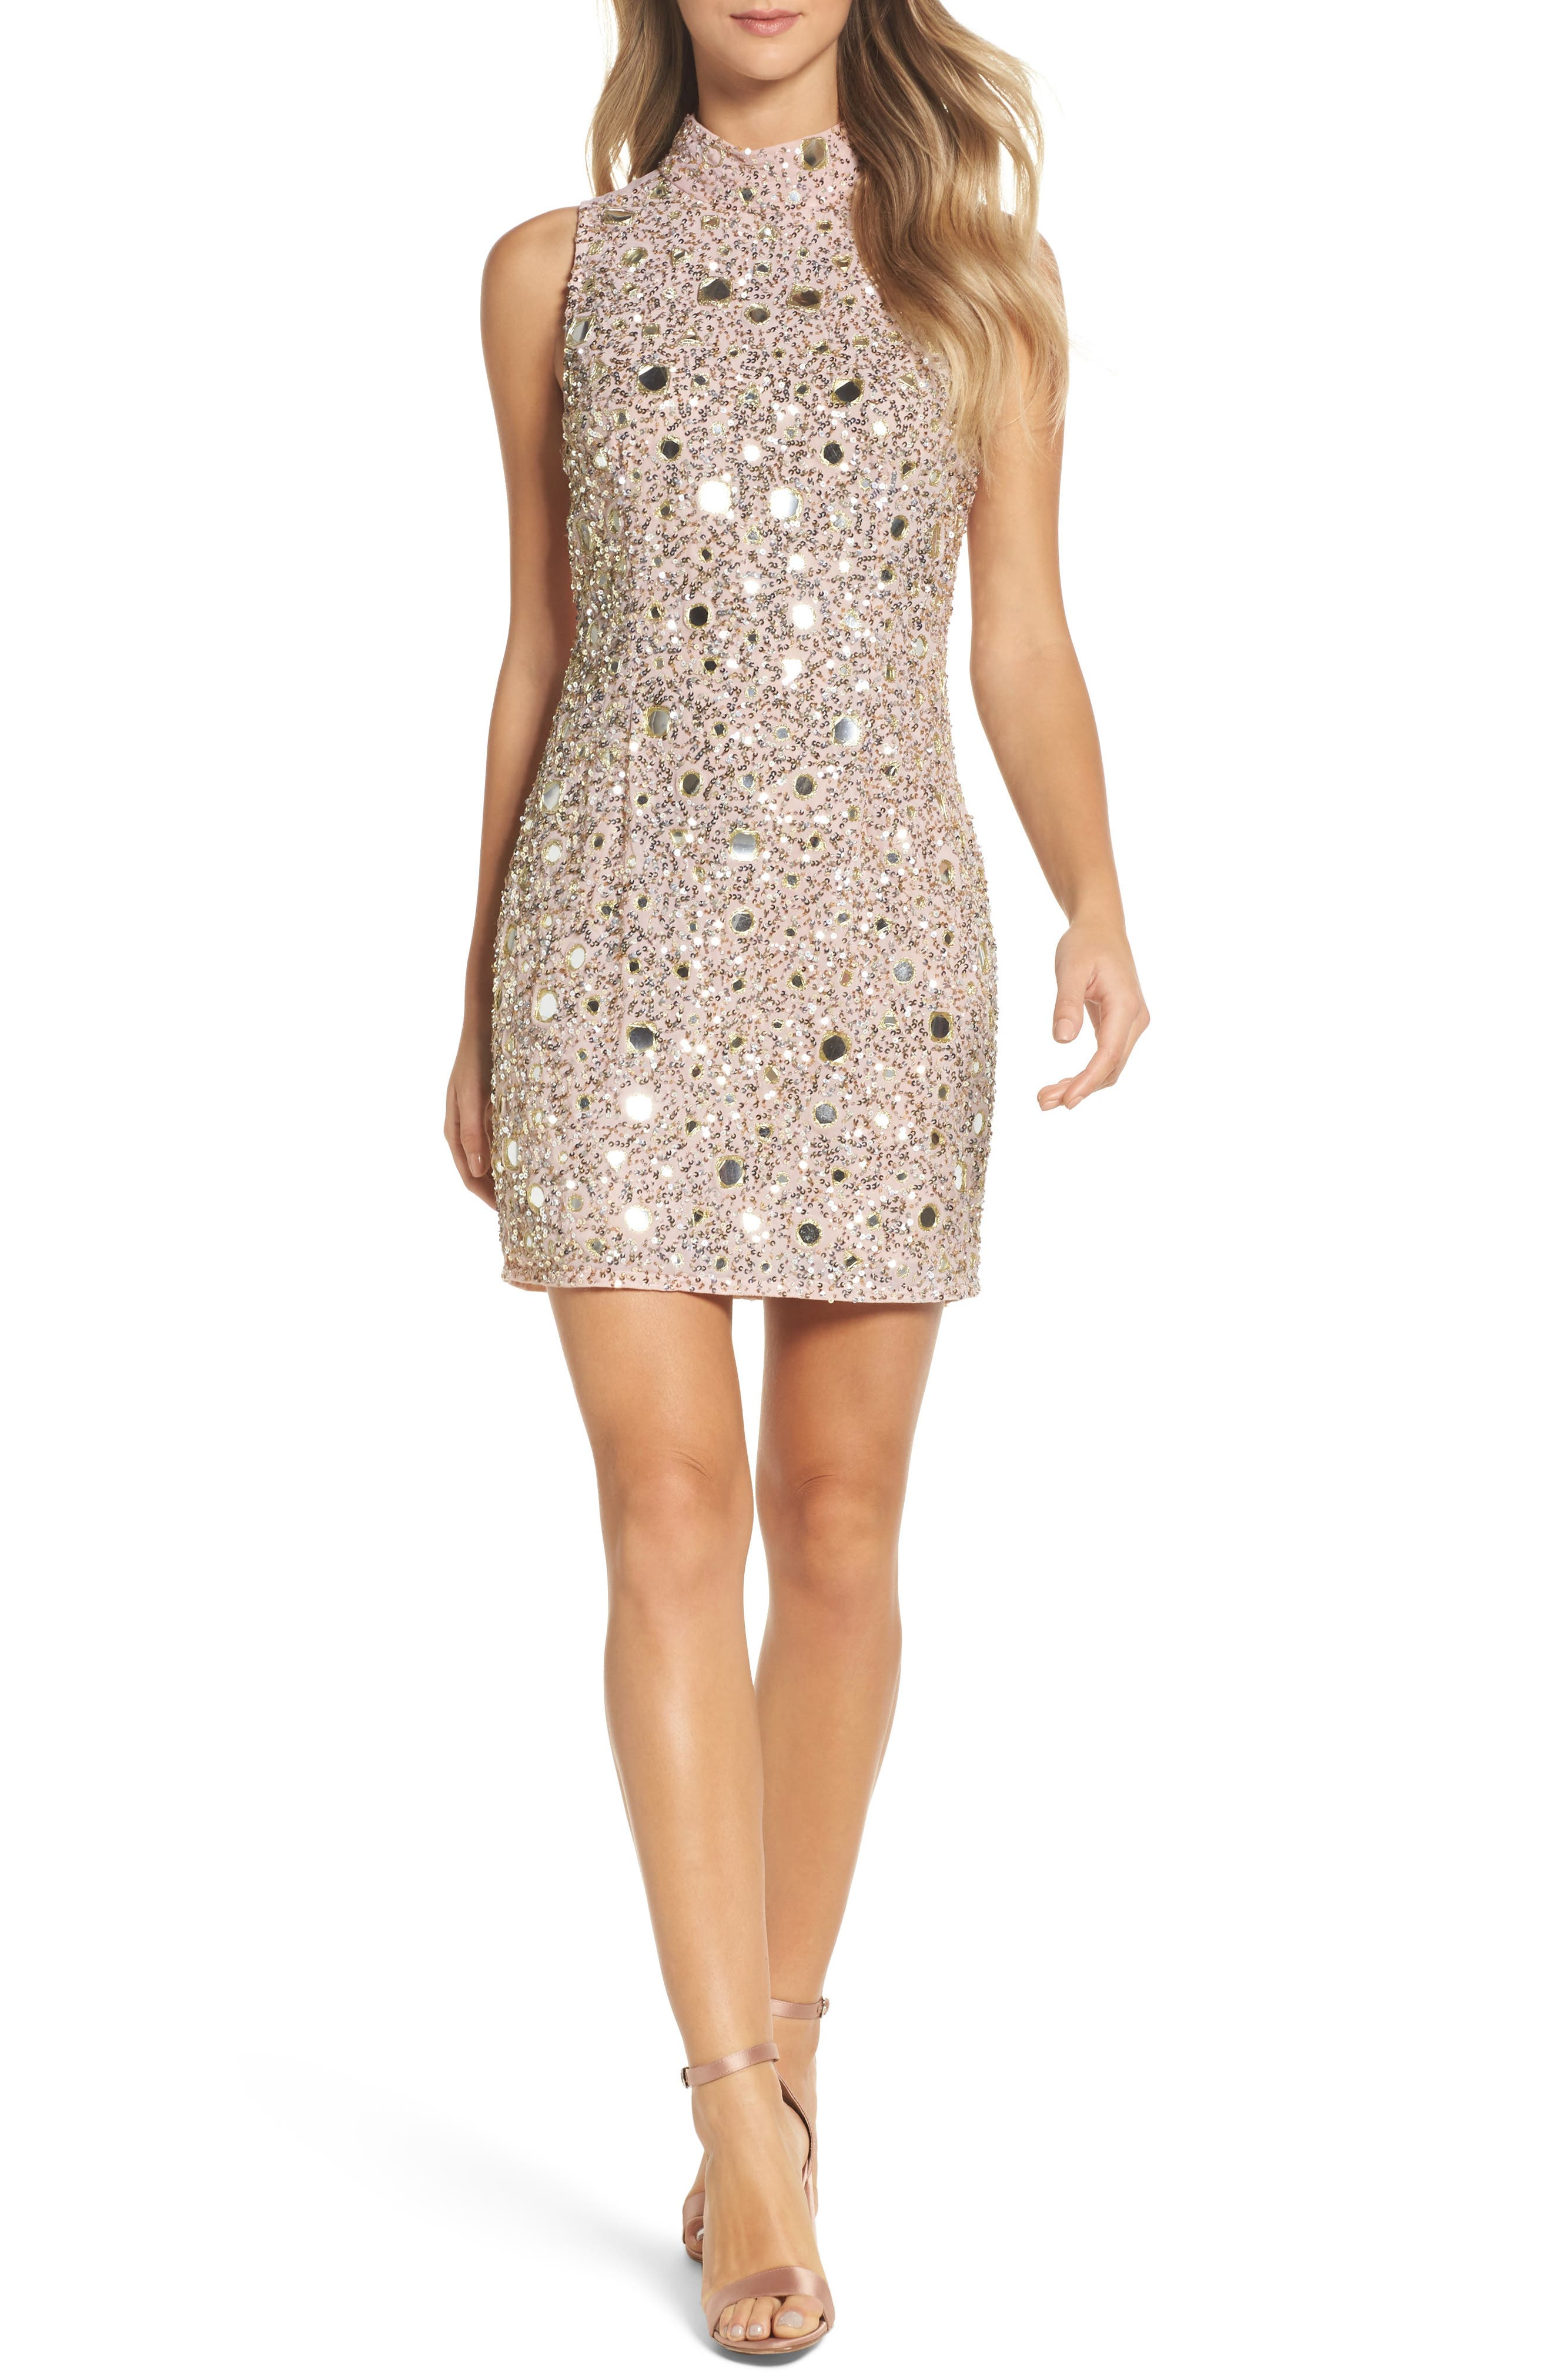 Eloise Mirrors Body-Con Dress,                             Main thumbnail 1, color,                             710